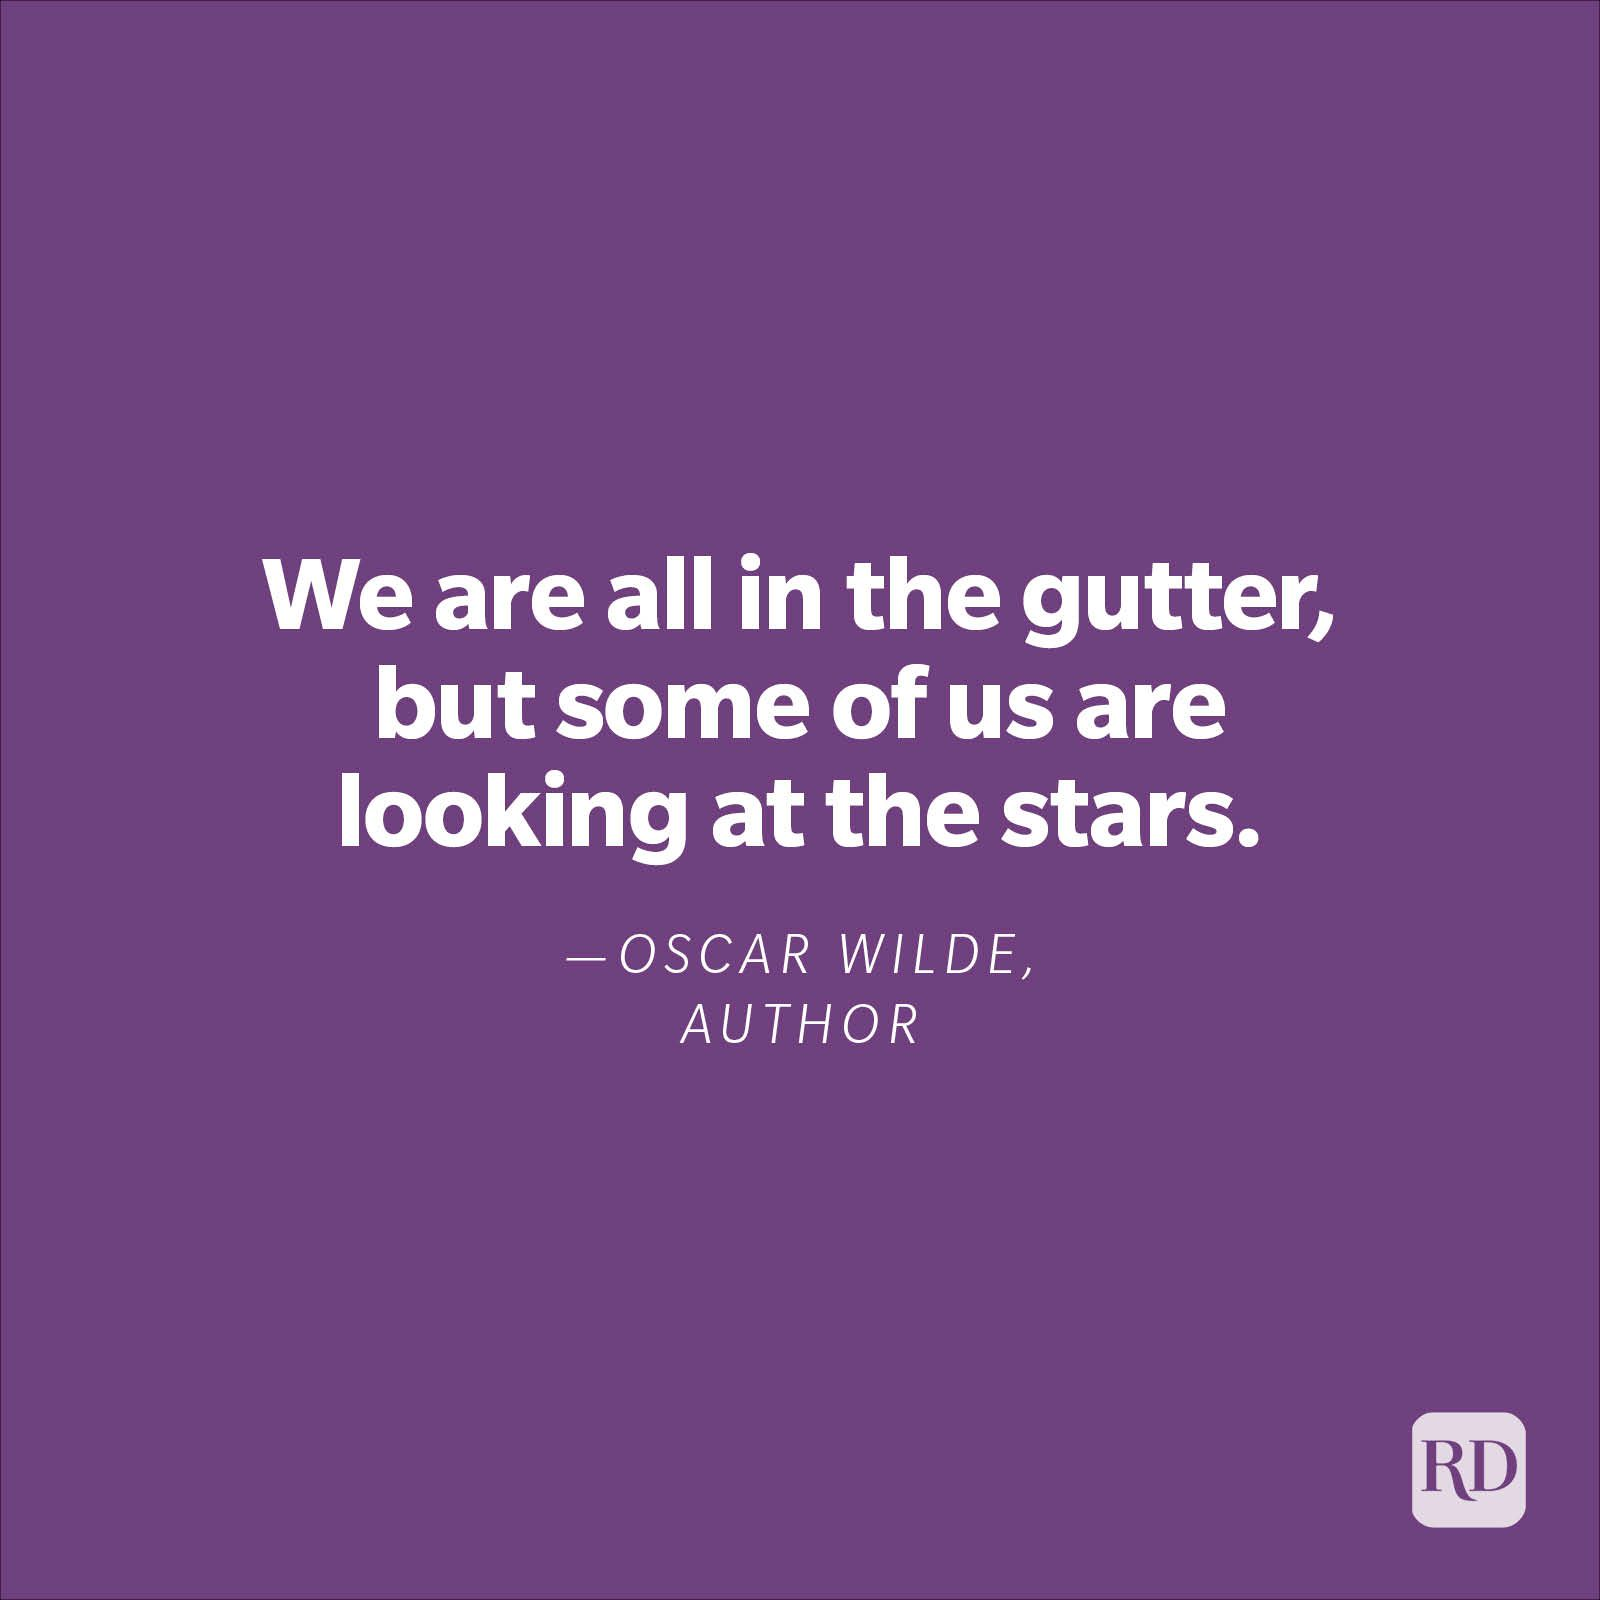 """""""We are all in the gutter, but some of us are looking at the stars.""""—Oscar Wilde, author"""